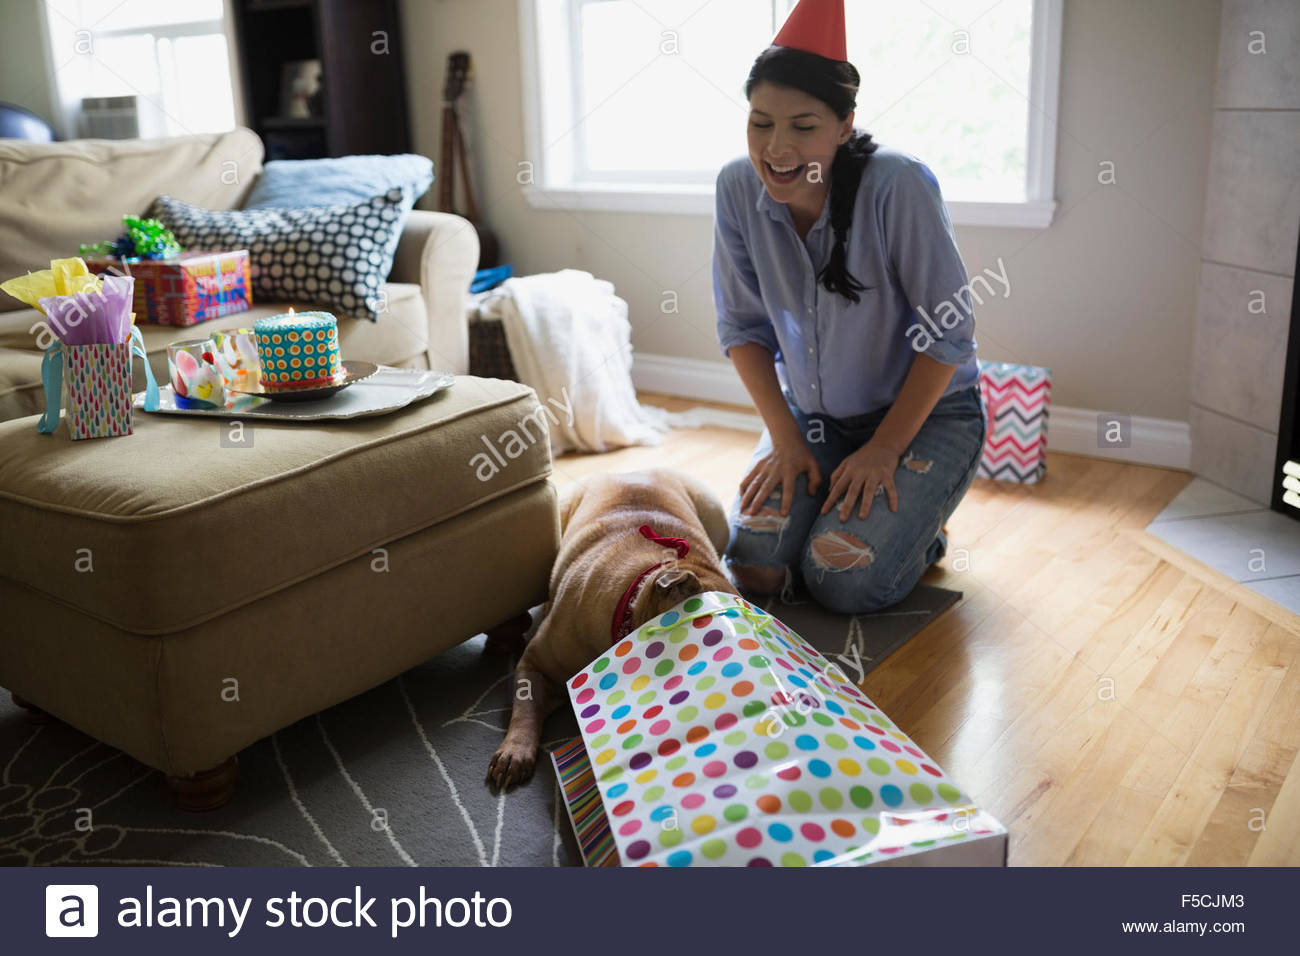 Dog opening birthday gift in living room - Stock Image